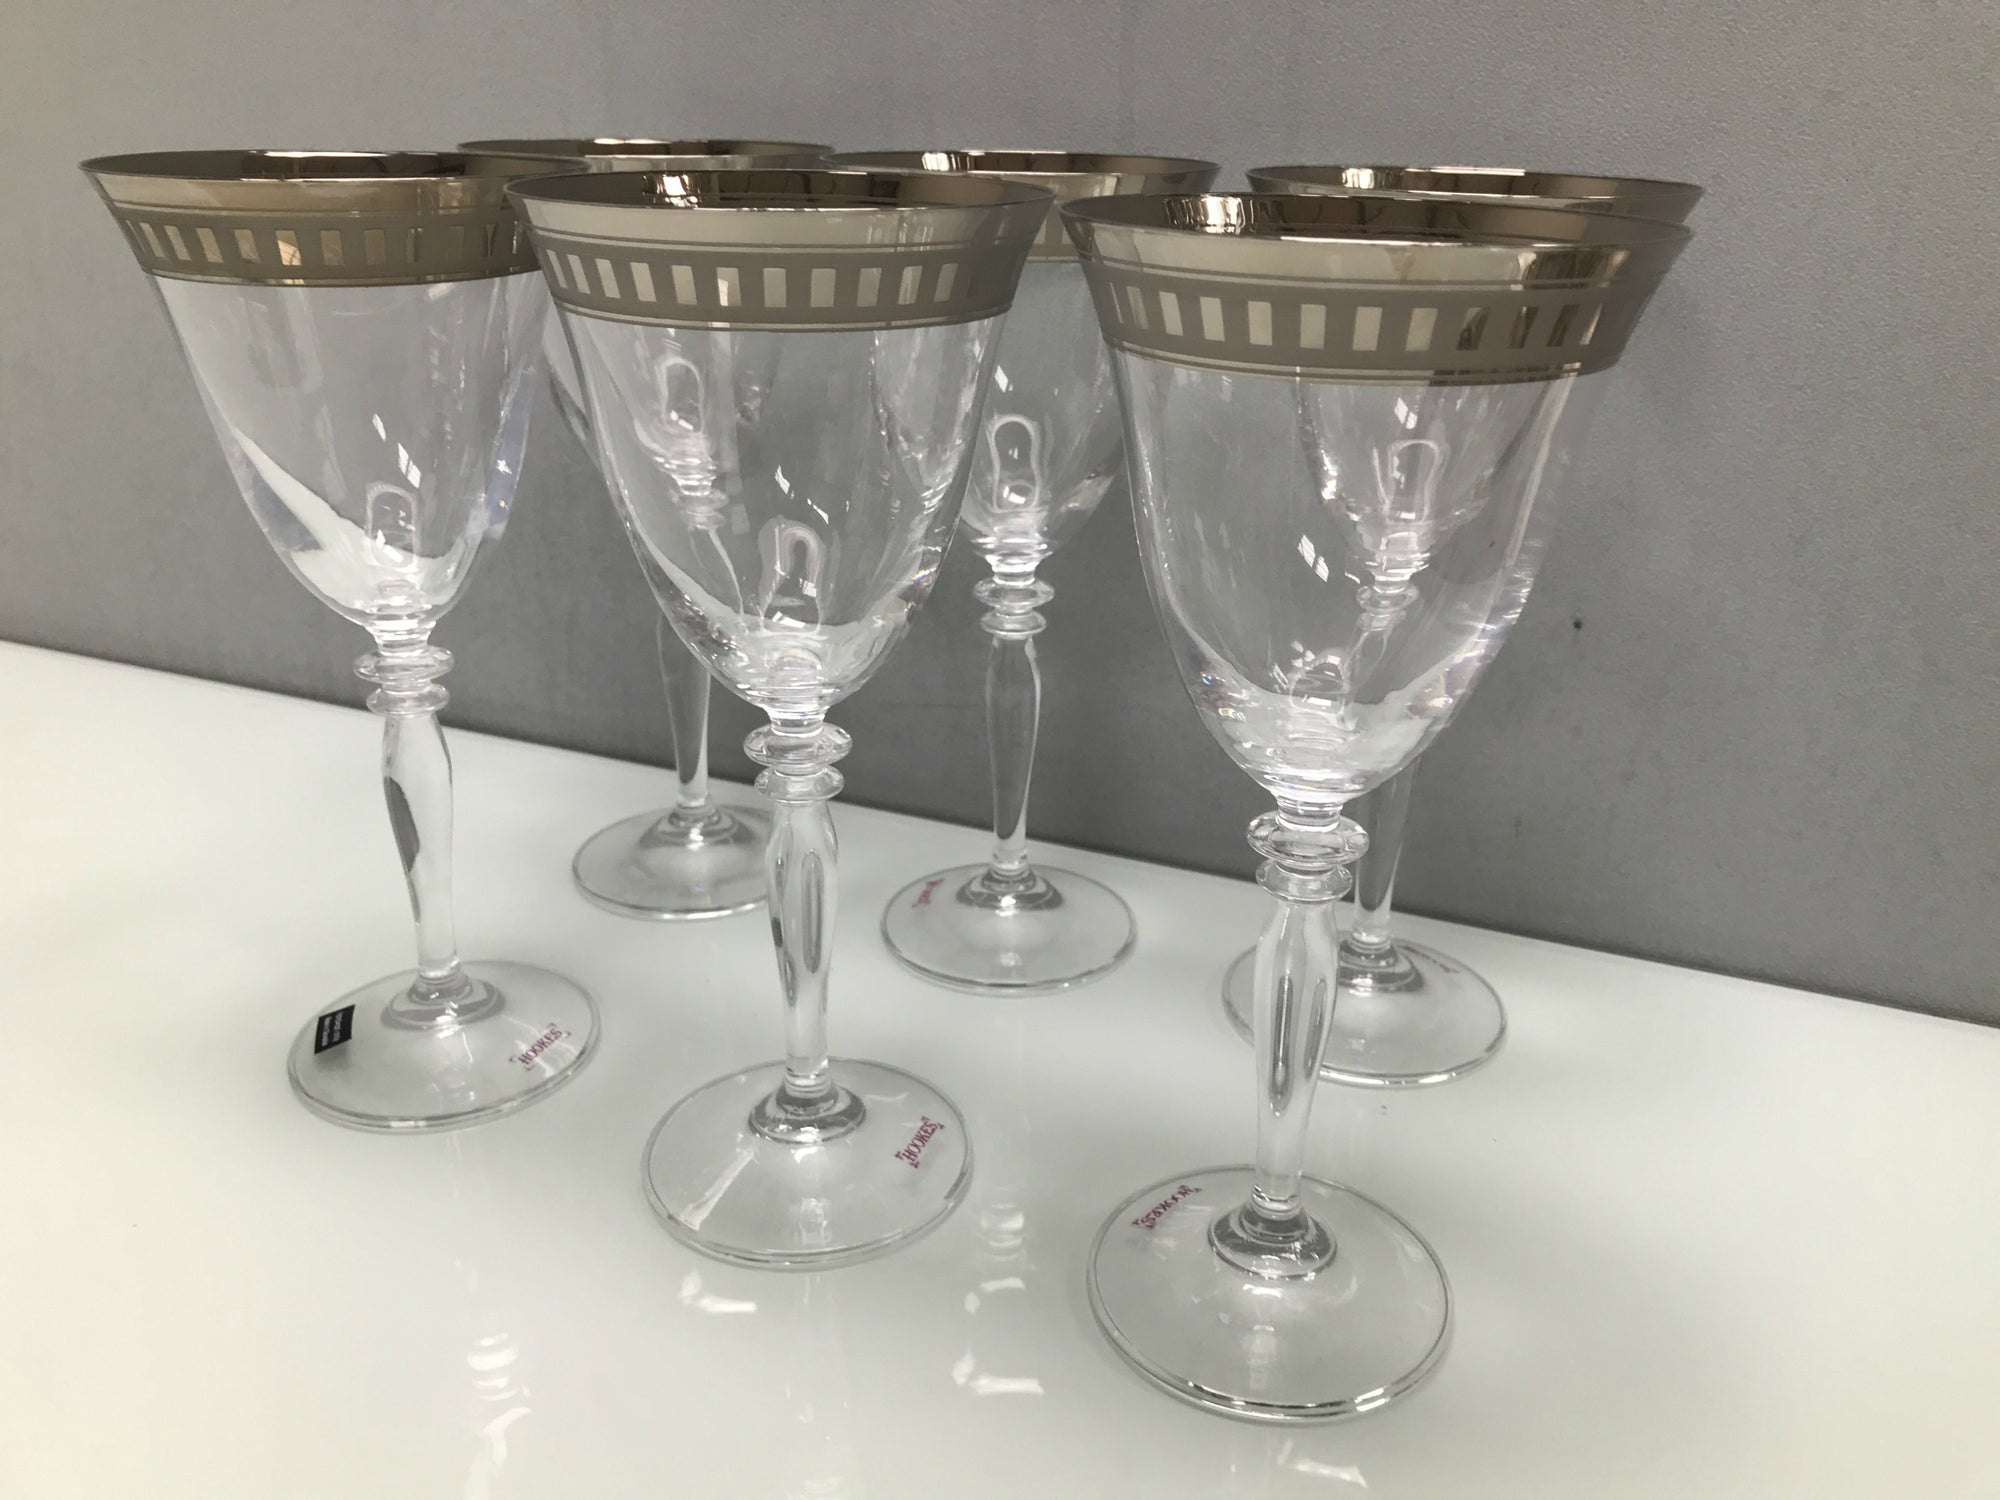 Platinum Rim Wine Glasses - Set of 6